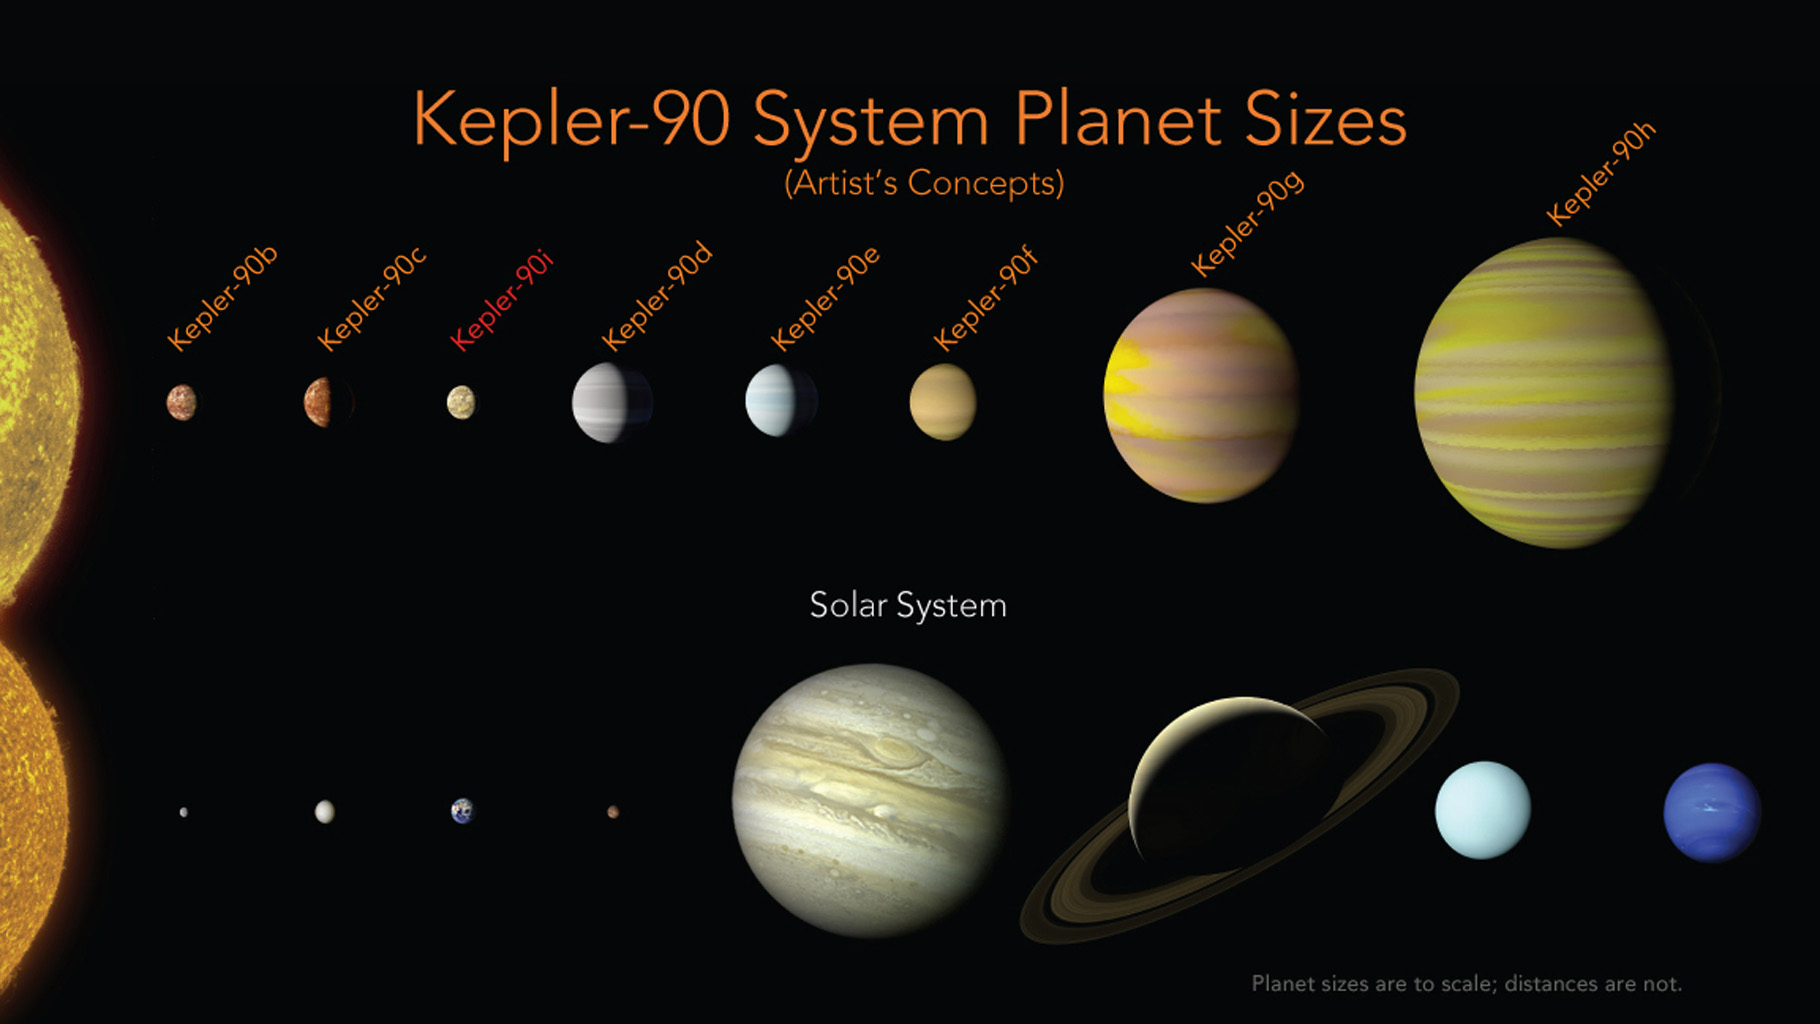 Space Images  Kepler System Compared To Our Solar System  Kepler System Compared To Our Solar System Artists Concept High School Sample Essay also Purchase Book Reports  How To Write A High School Essay